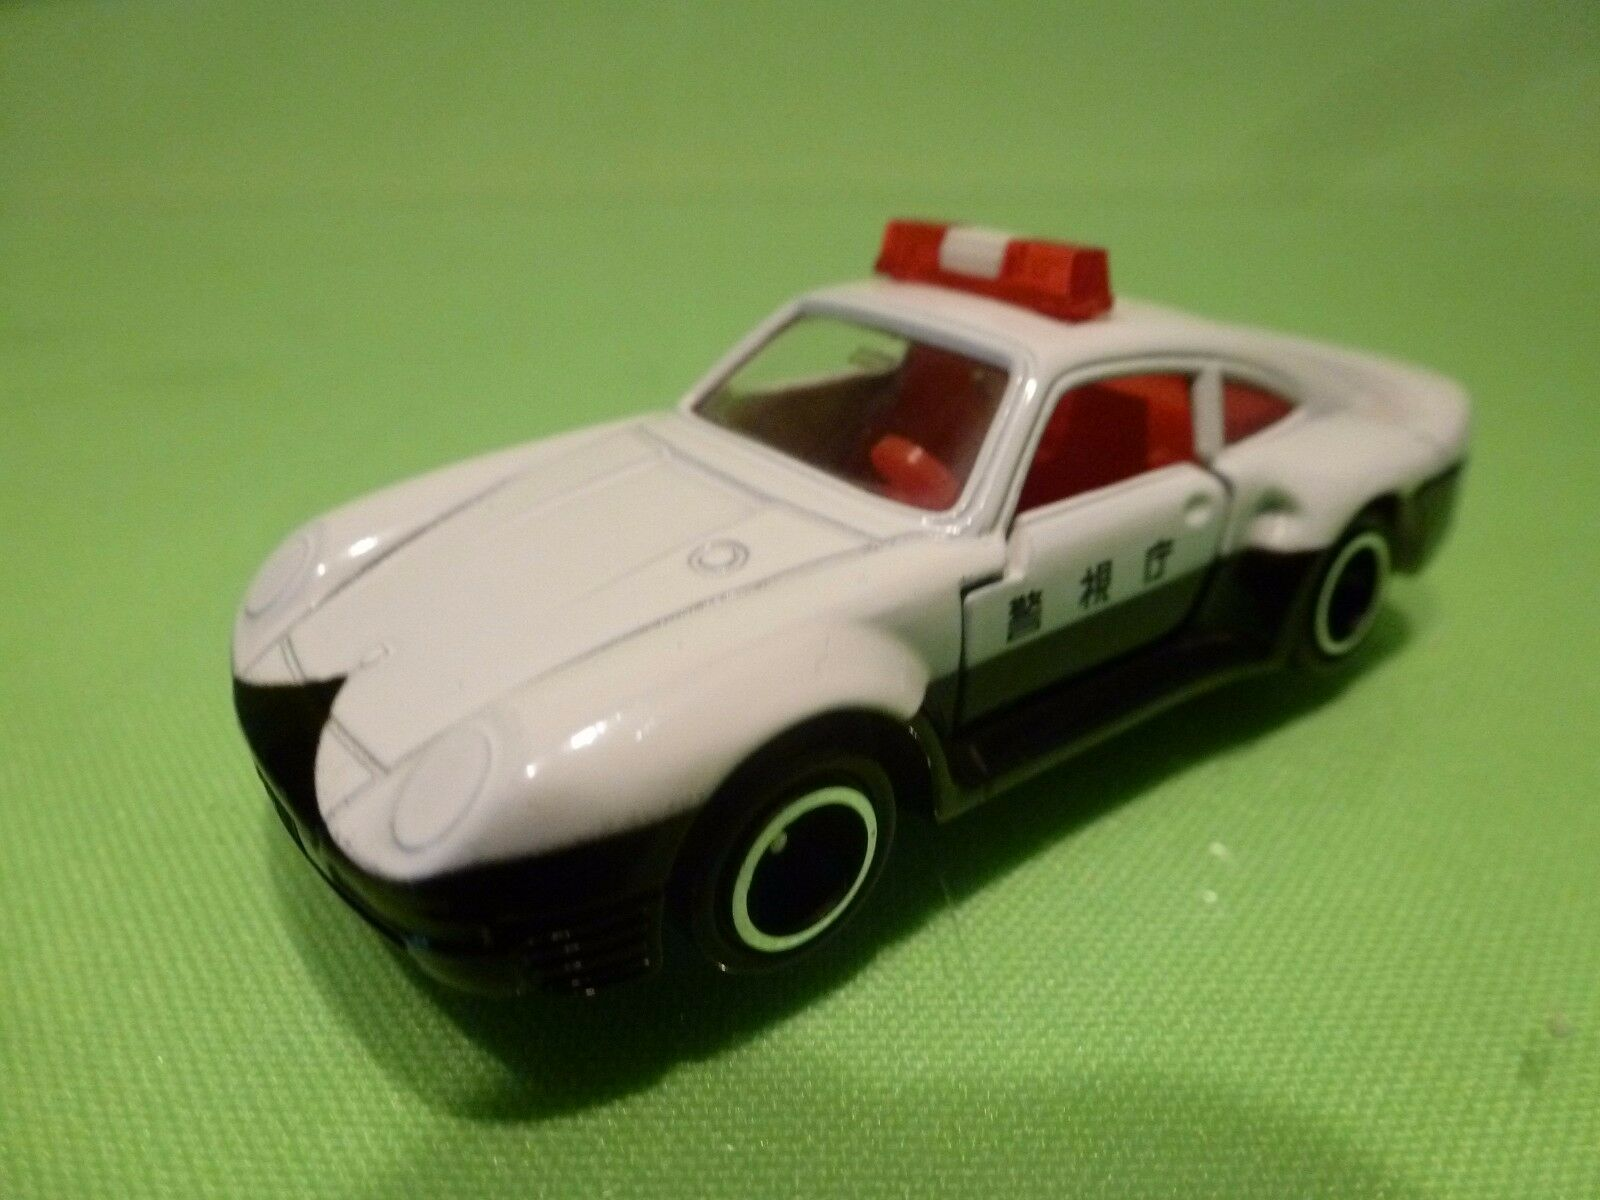 TOMICA 120 PORSCHE 959 - JAPAN  POLICE - bianca  1:58 EXTREMELY RARE - EXCELLENT